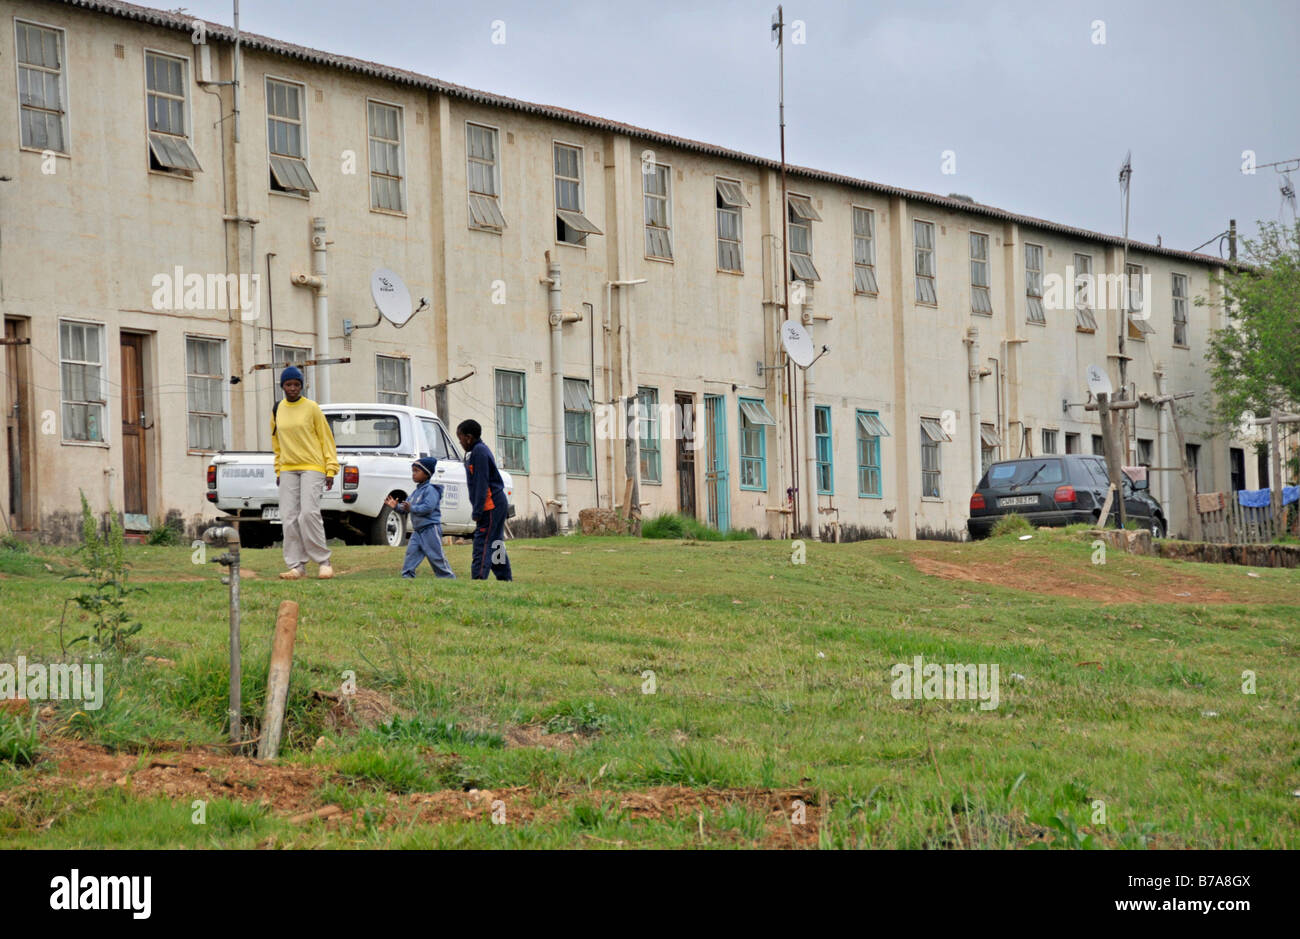 Apartment block of the black citizens of Sabie, South Africa, Africa ...